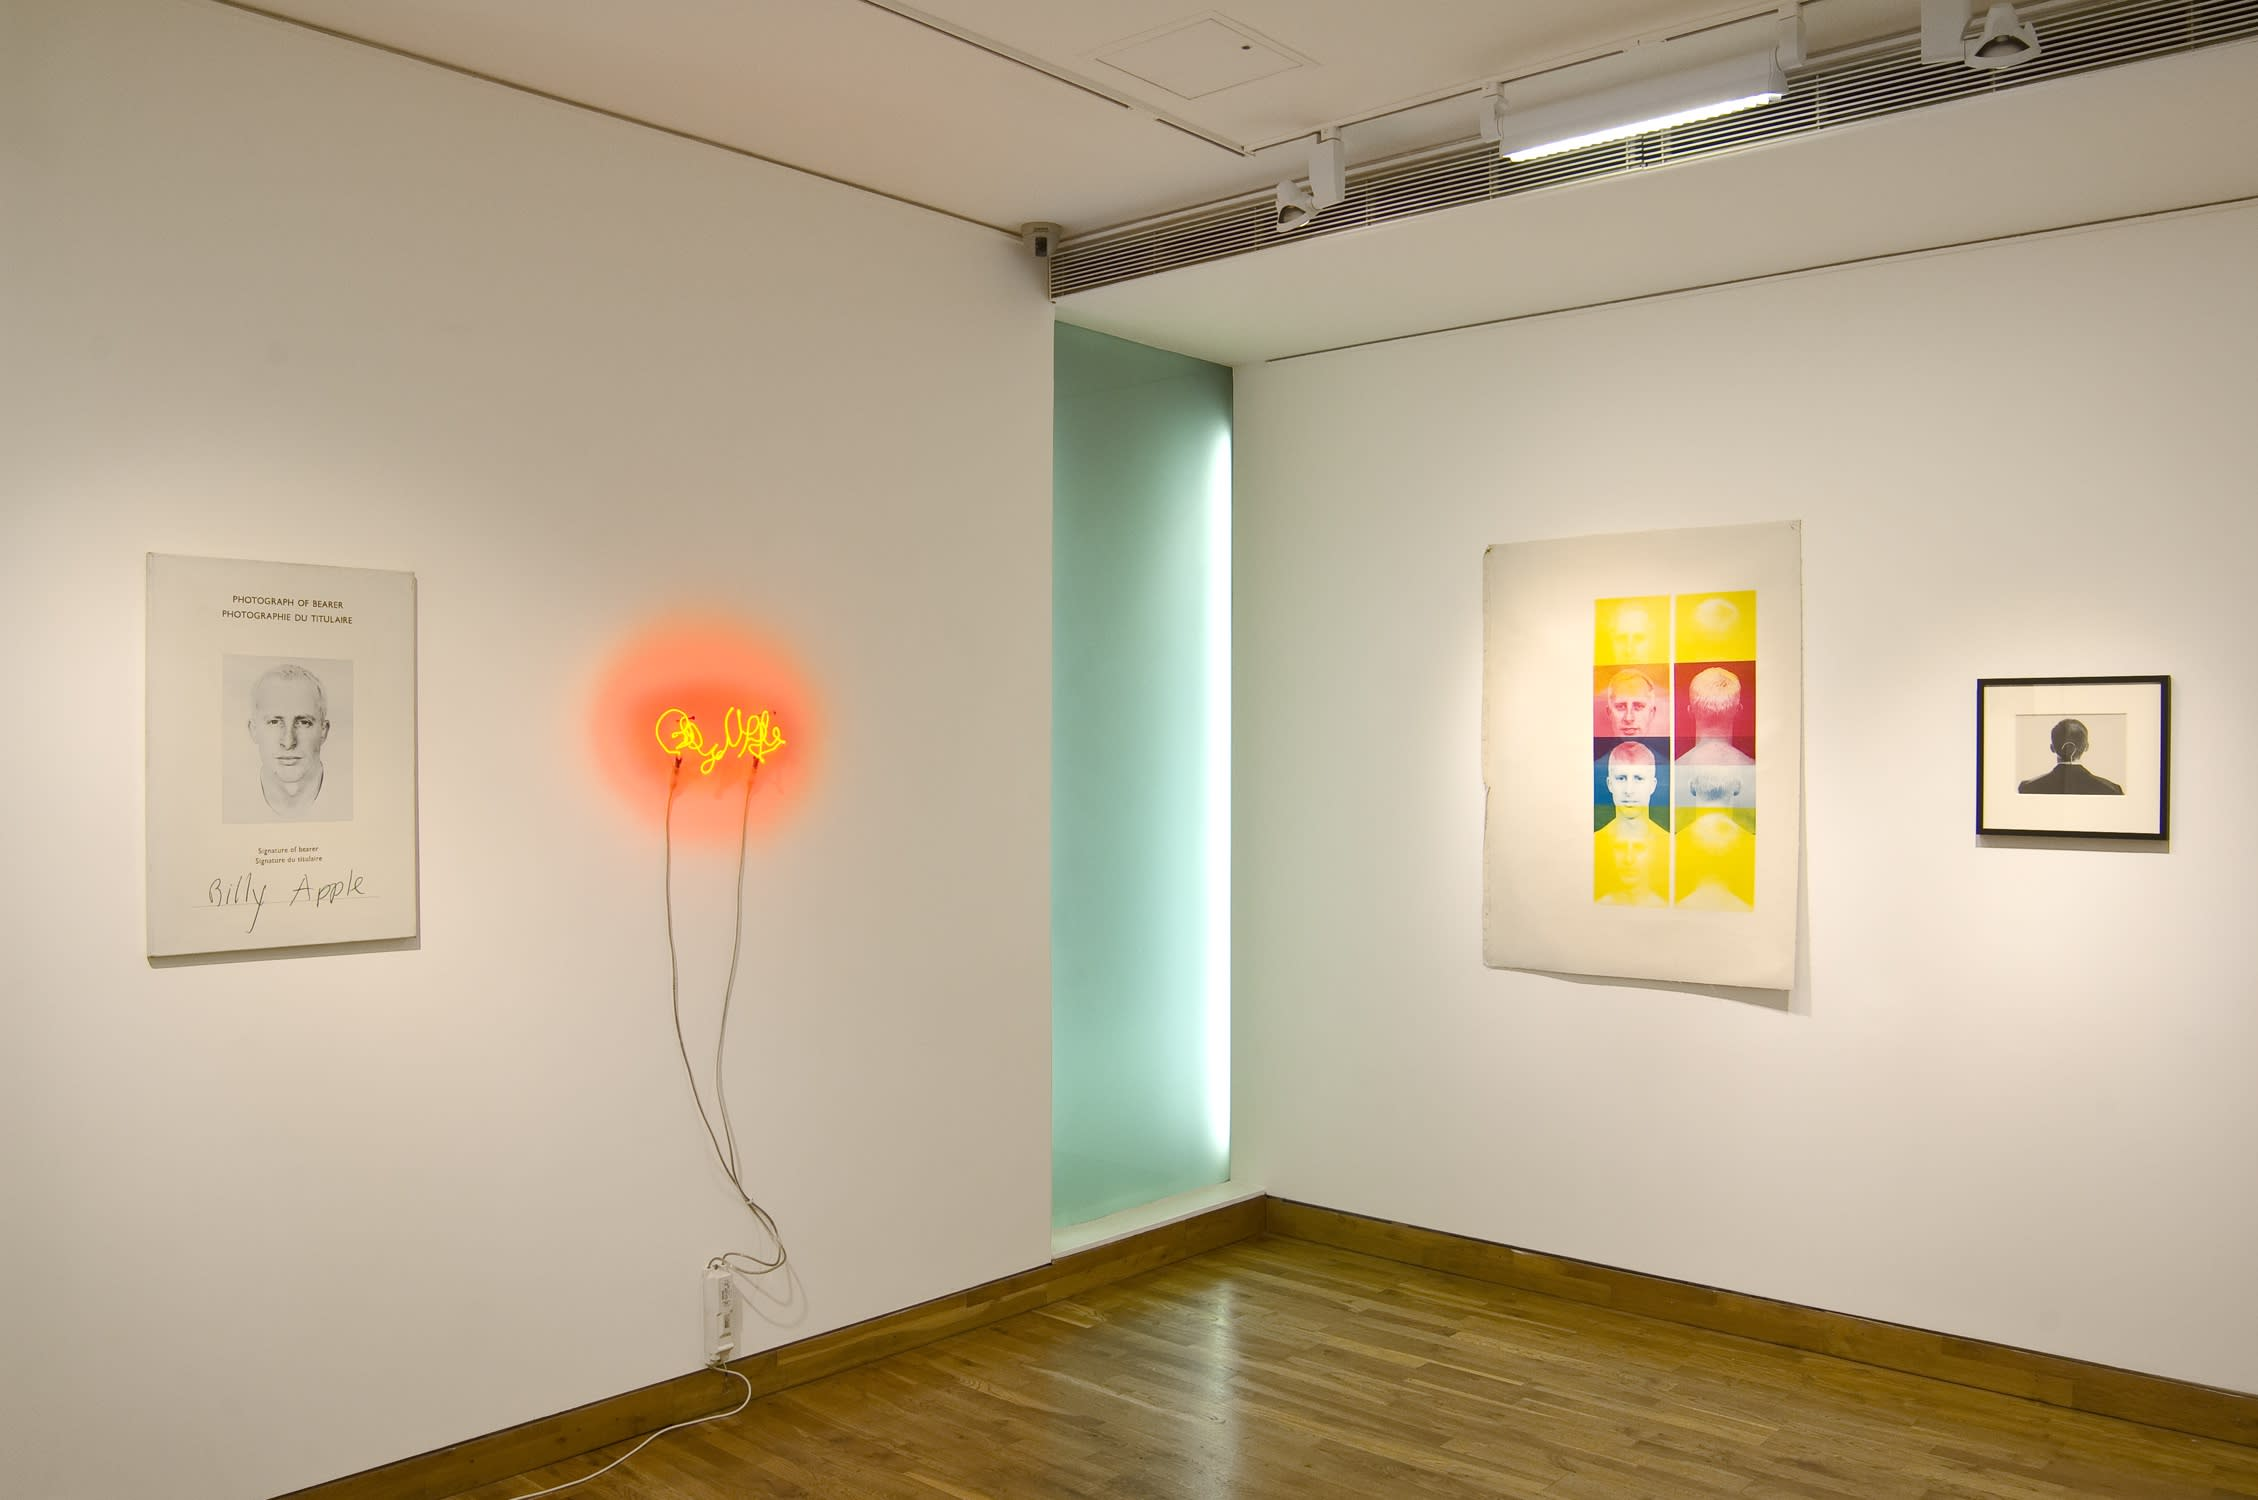 """<span class=""""link fancybox-details-link""""><a href=""""/exhibitions/83/works/image_standalone248/"""">View Detail Page</a></span><p>BILLY APPLE   BRITISH & AMERICAN WORKS 1960 - 1969   16 SEP - 30 OCT 2010   Installation View</p>"""